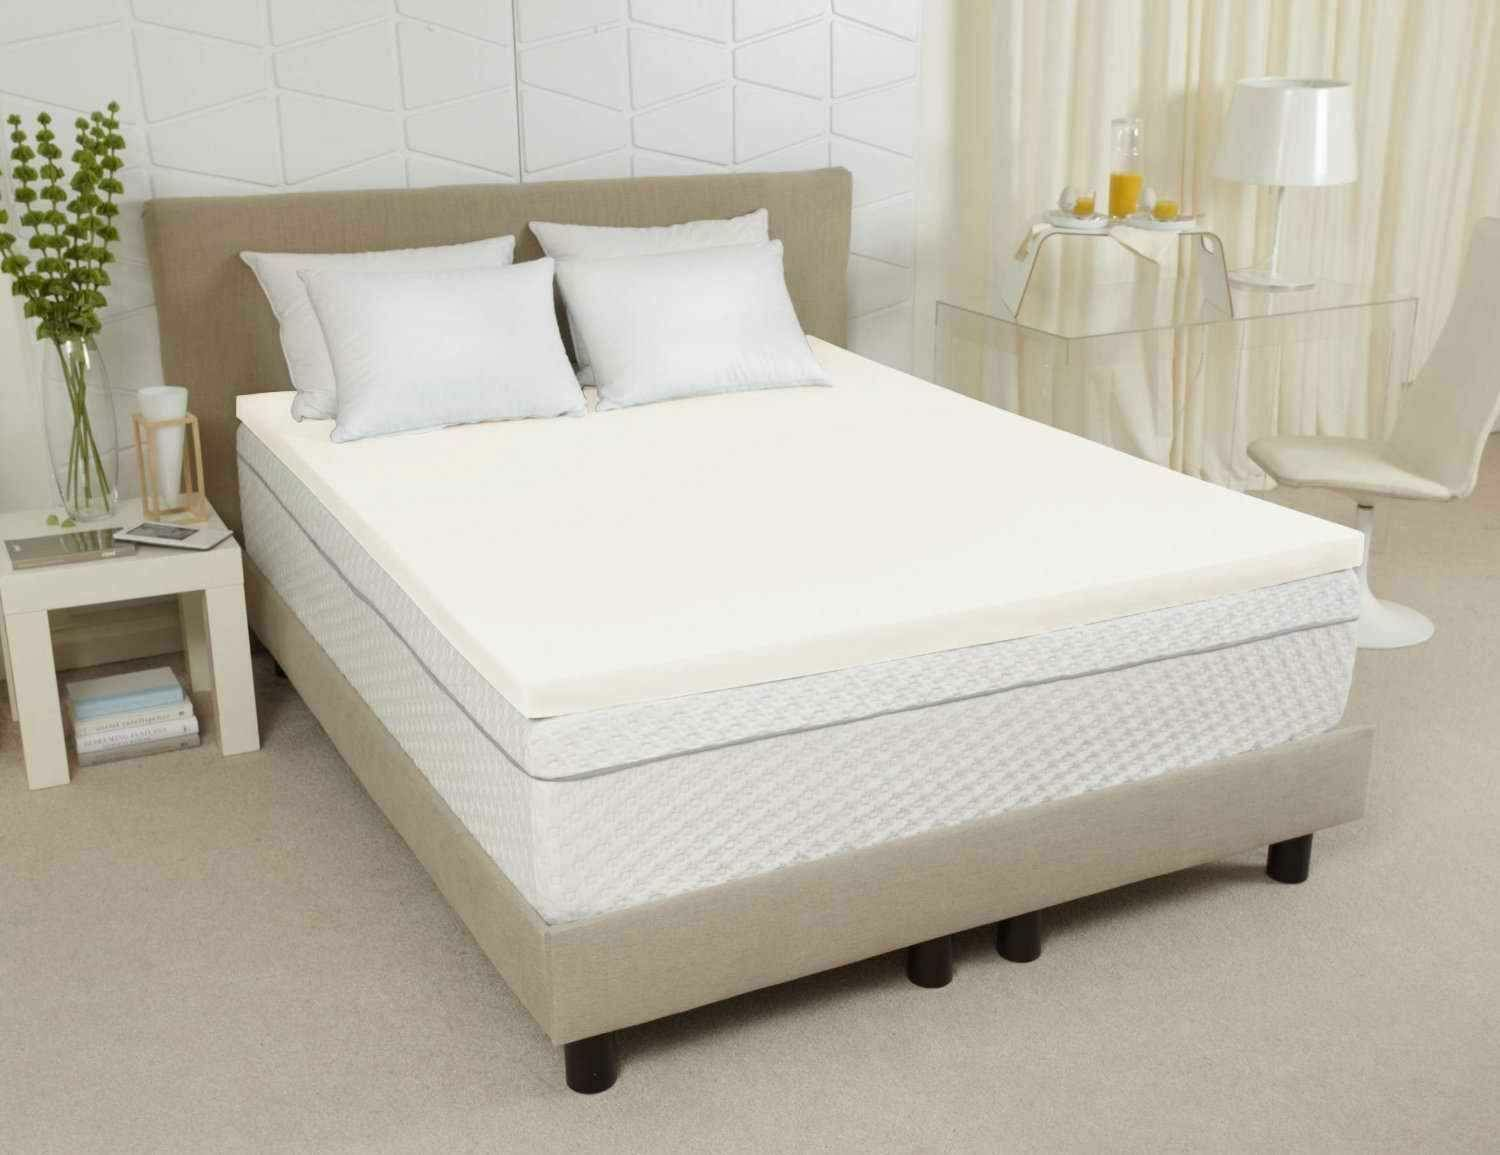 How to Pick a Memory Foam Mattress Topper